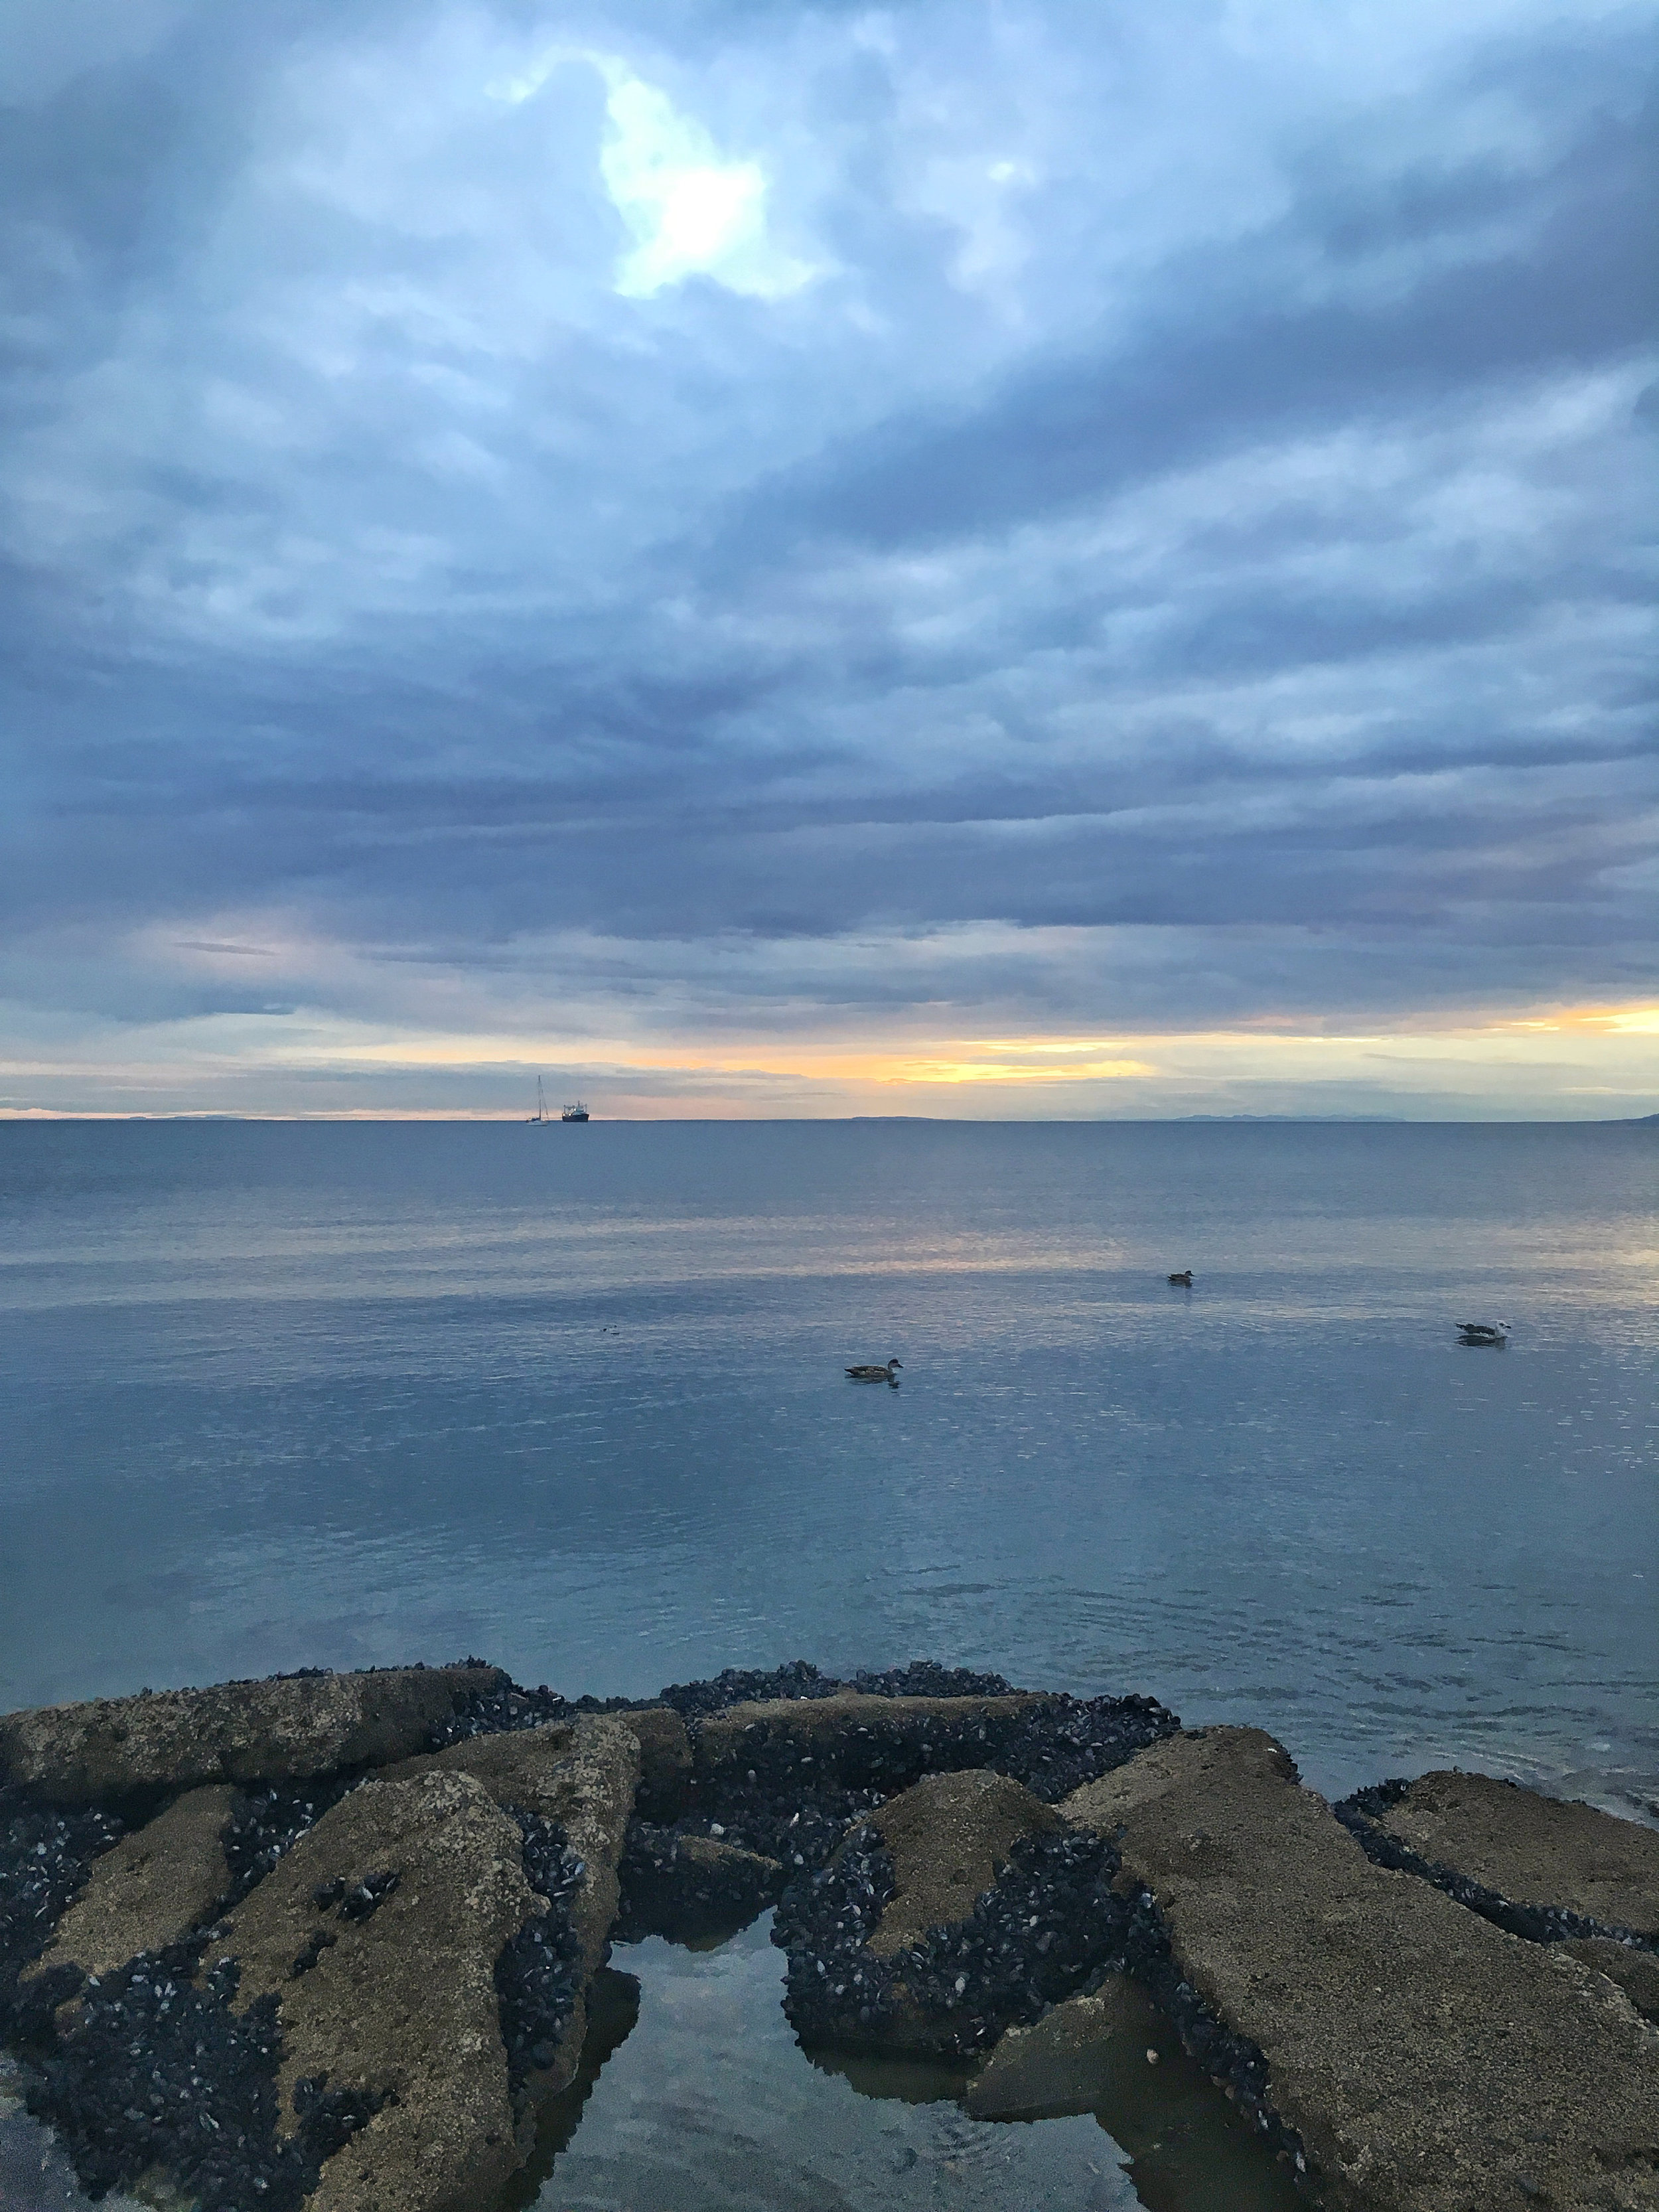 A calm evening on the Strait of Magellan; Punta Arenas, Chile